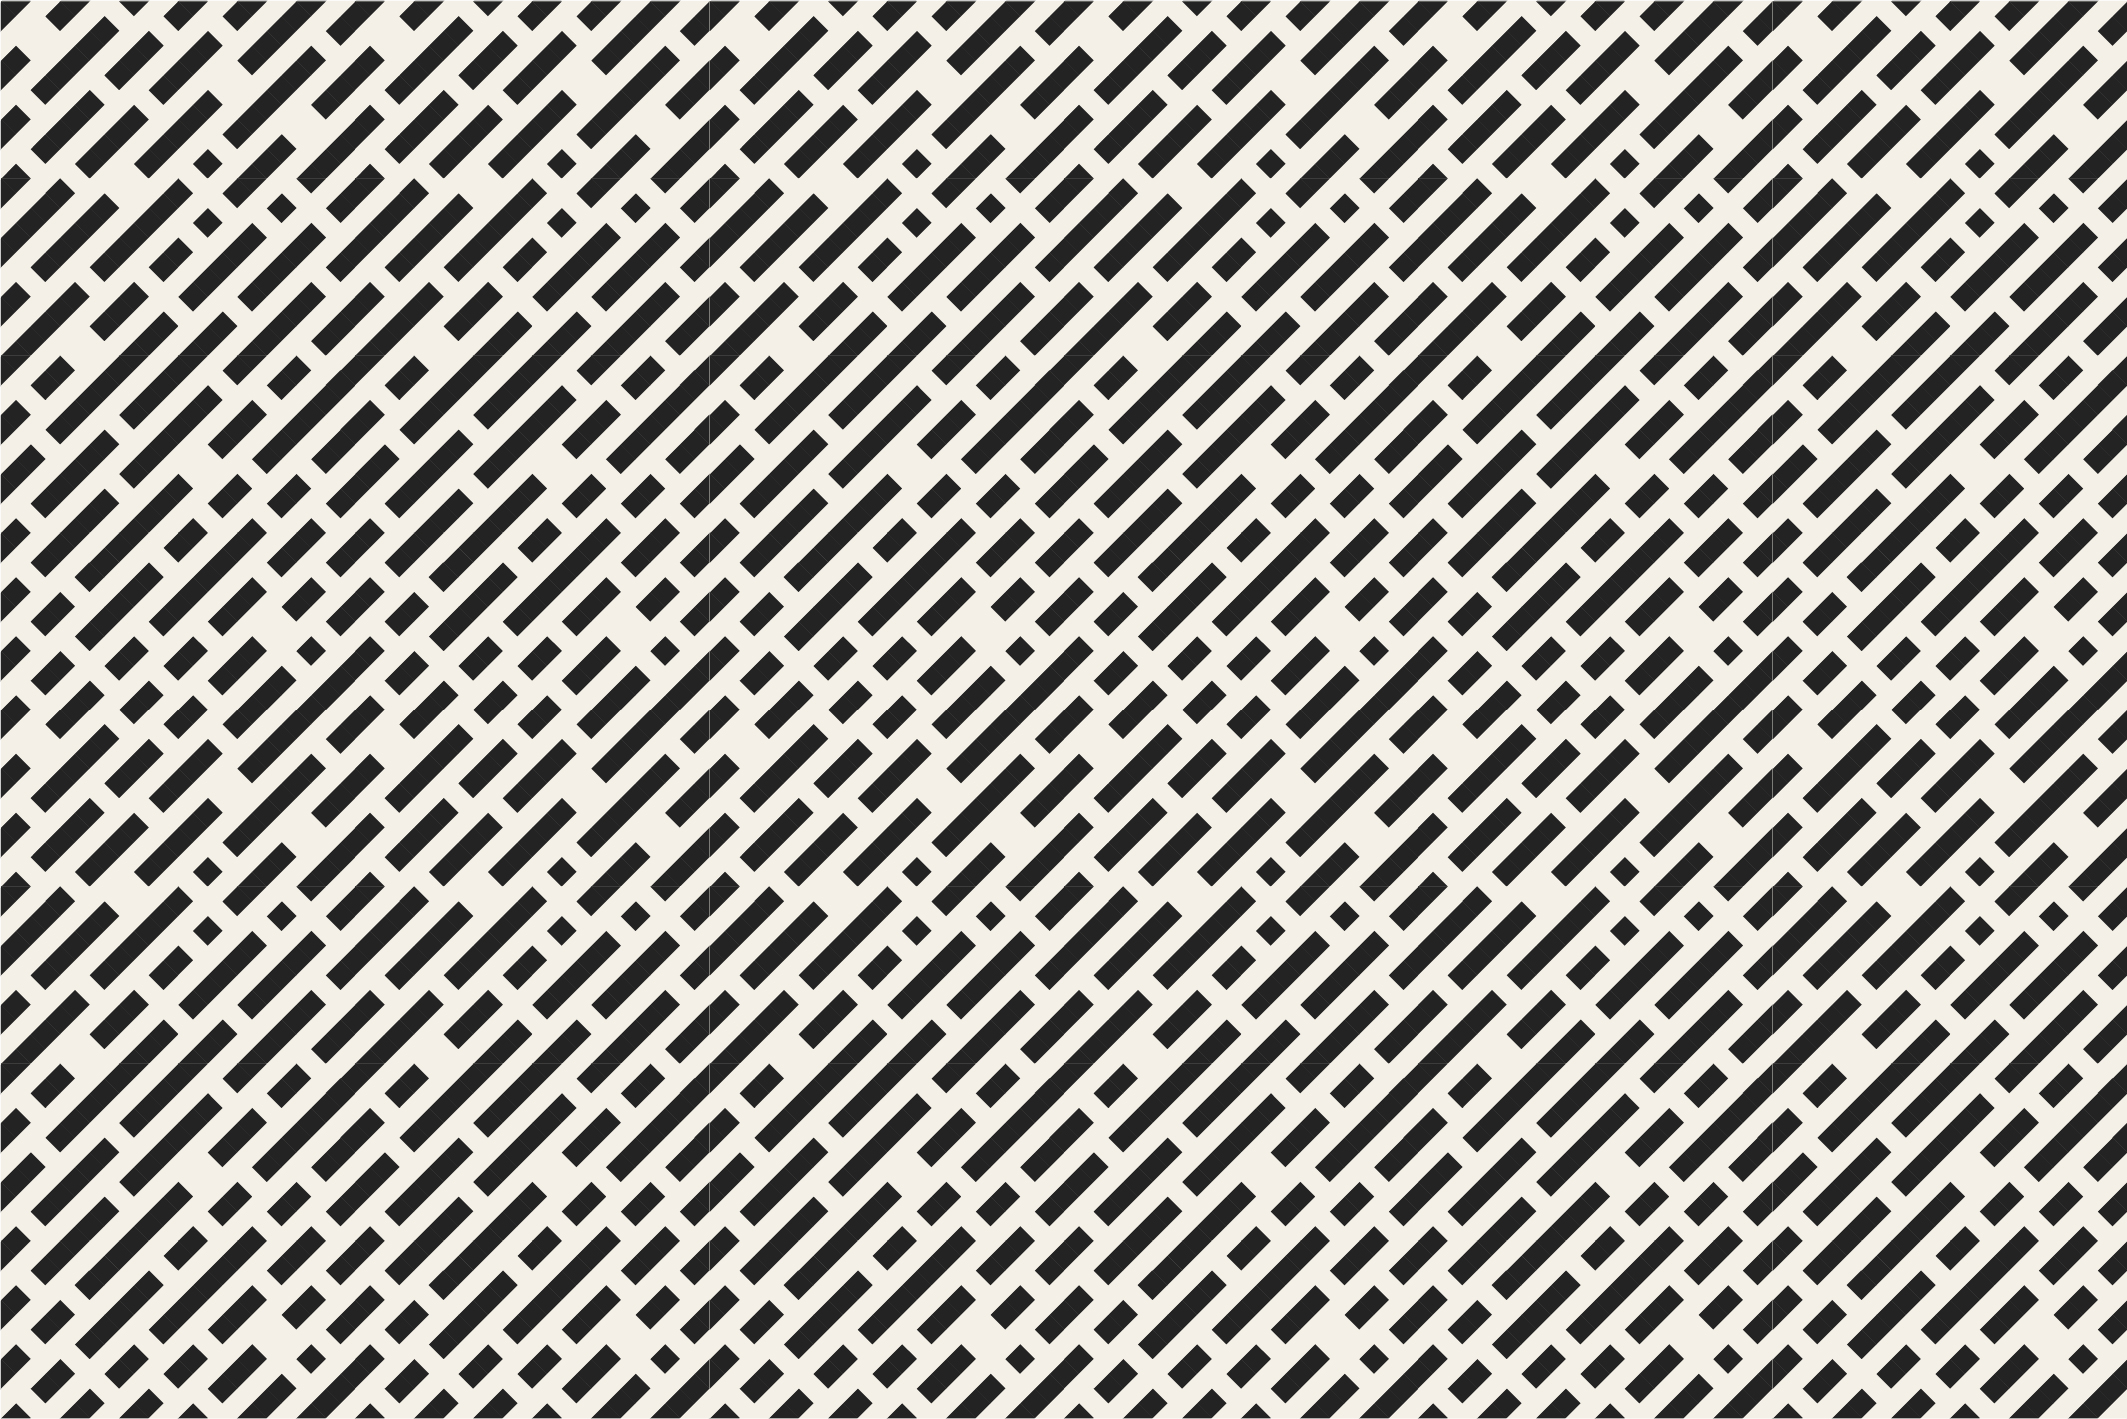 Geometric vector seamless patterns example image 7